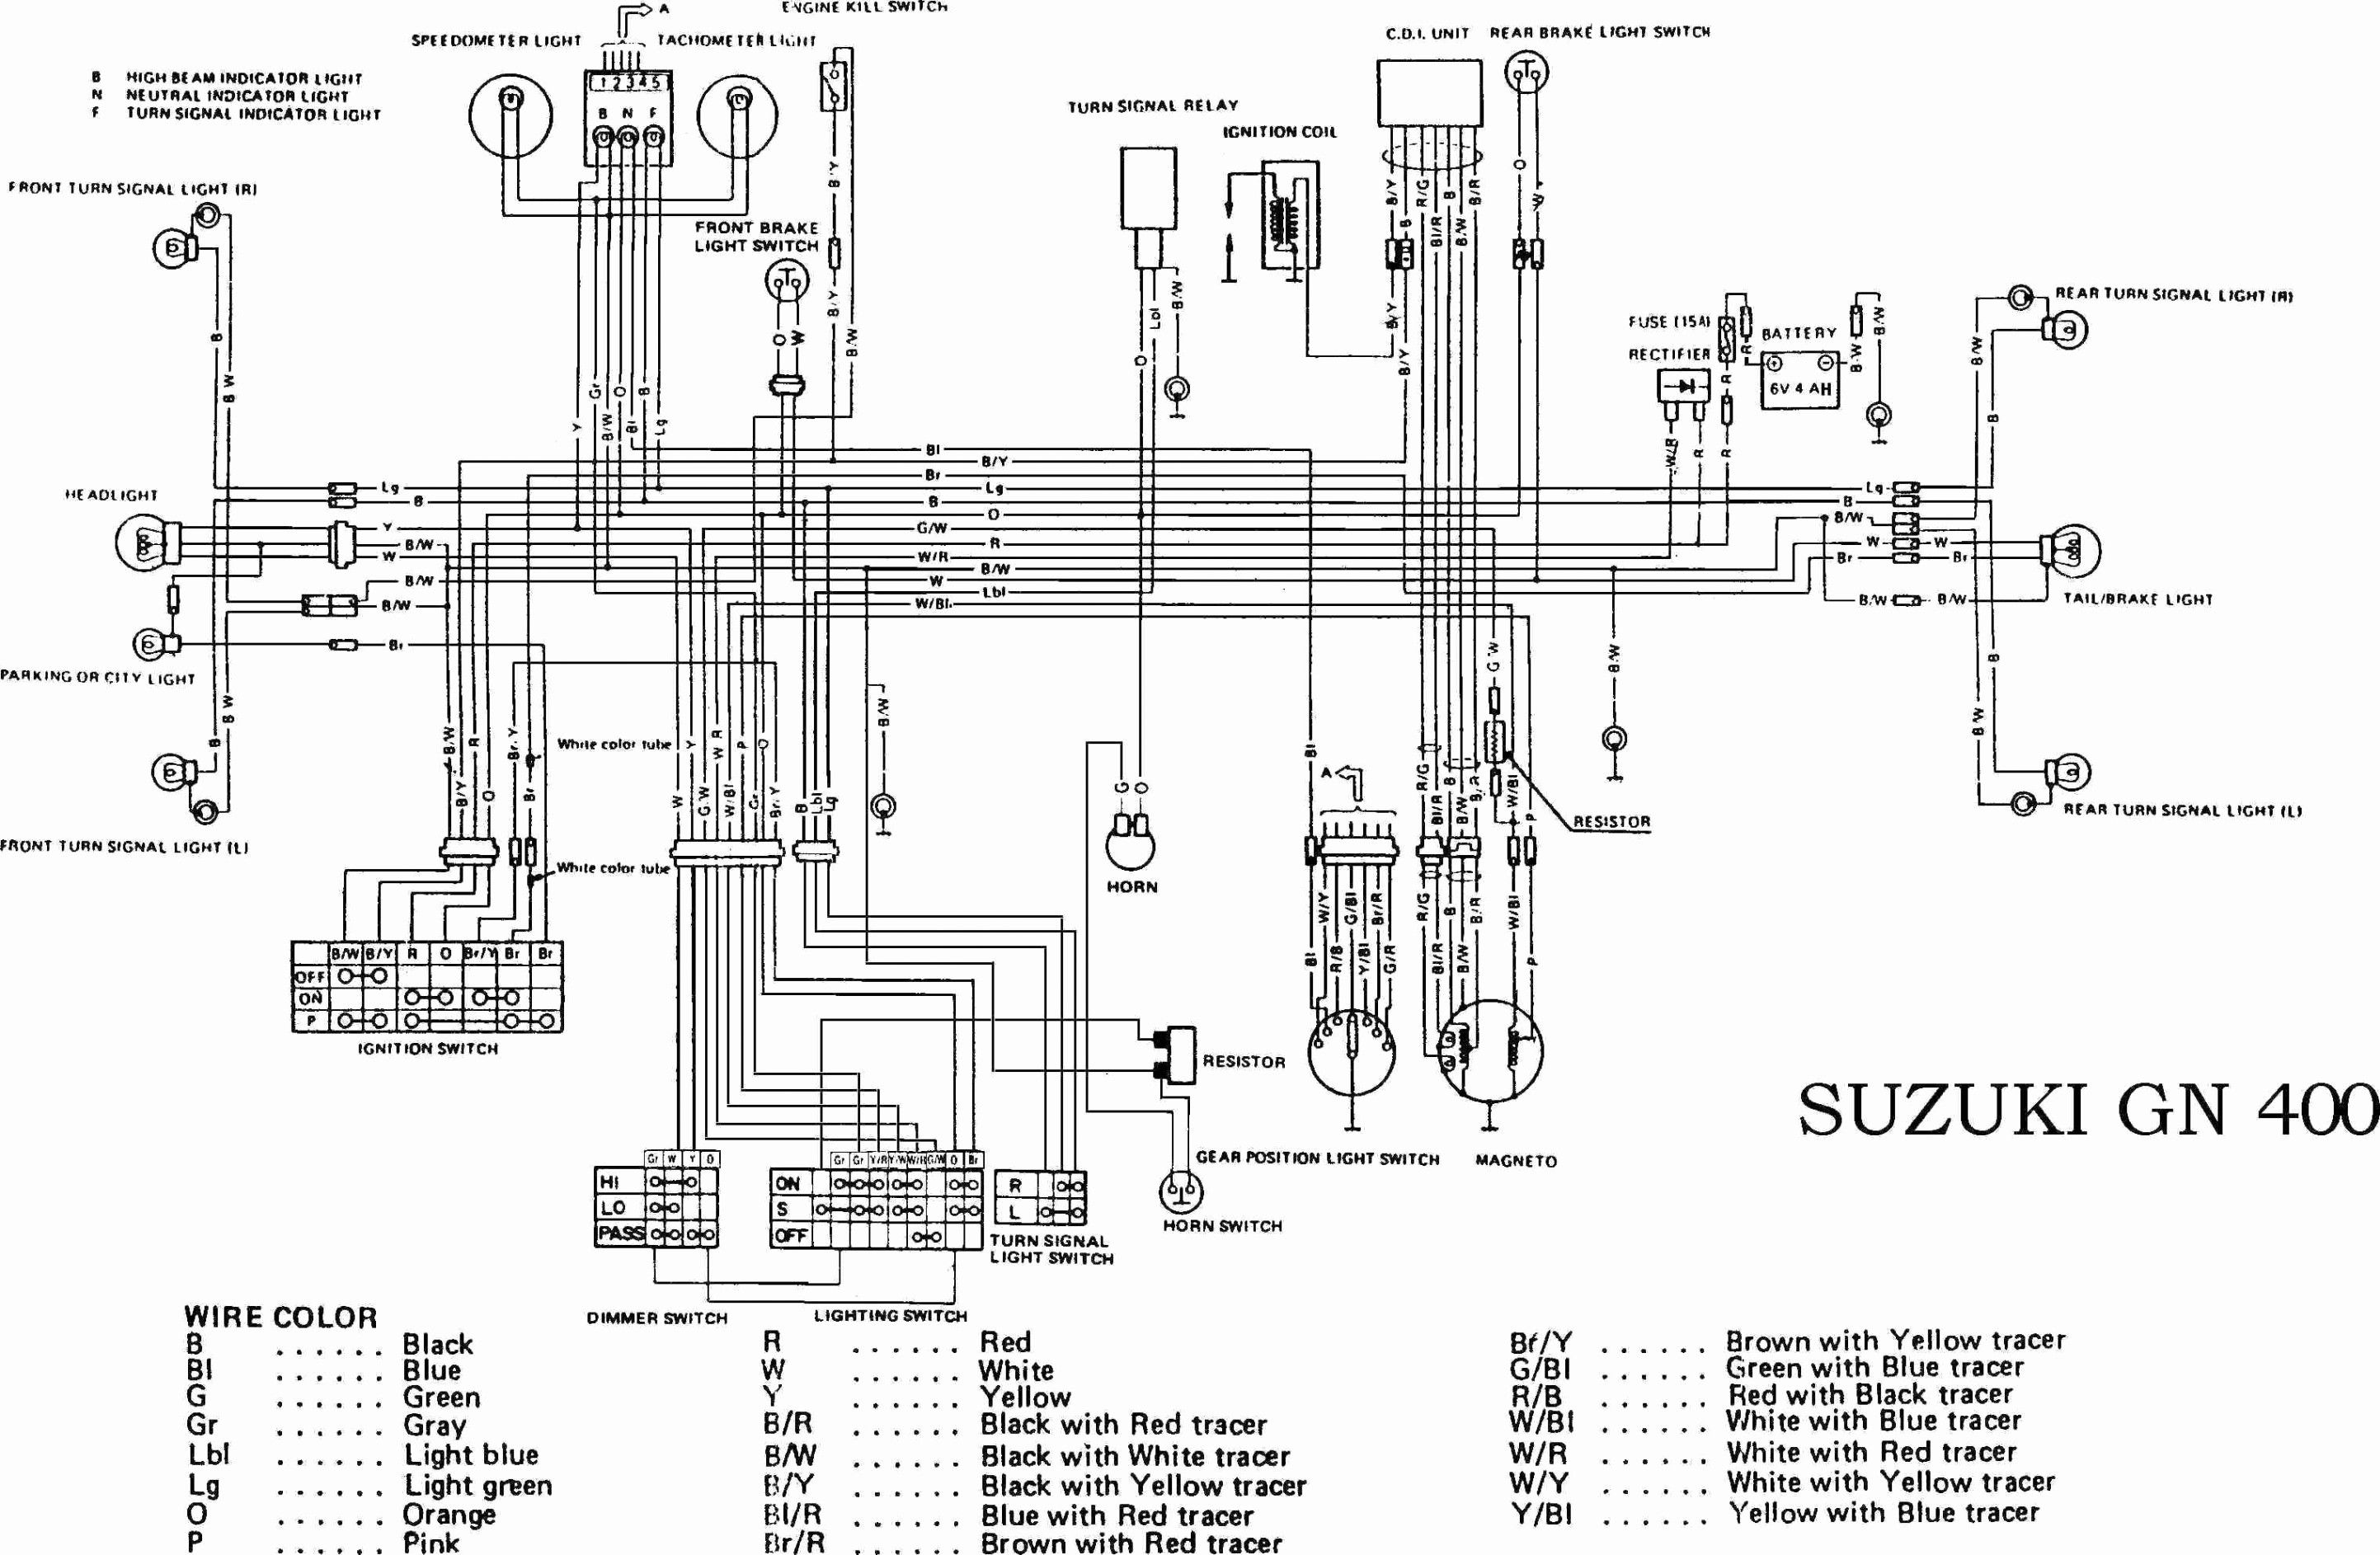 Inspirational toyota Wiring Diagram Abbreviations #diagrams #digramssample  #diagramimages #wiring… | Electrical wiring, Motorcycle wiring, Electrical  wiring diagramPinterest